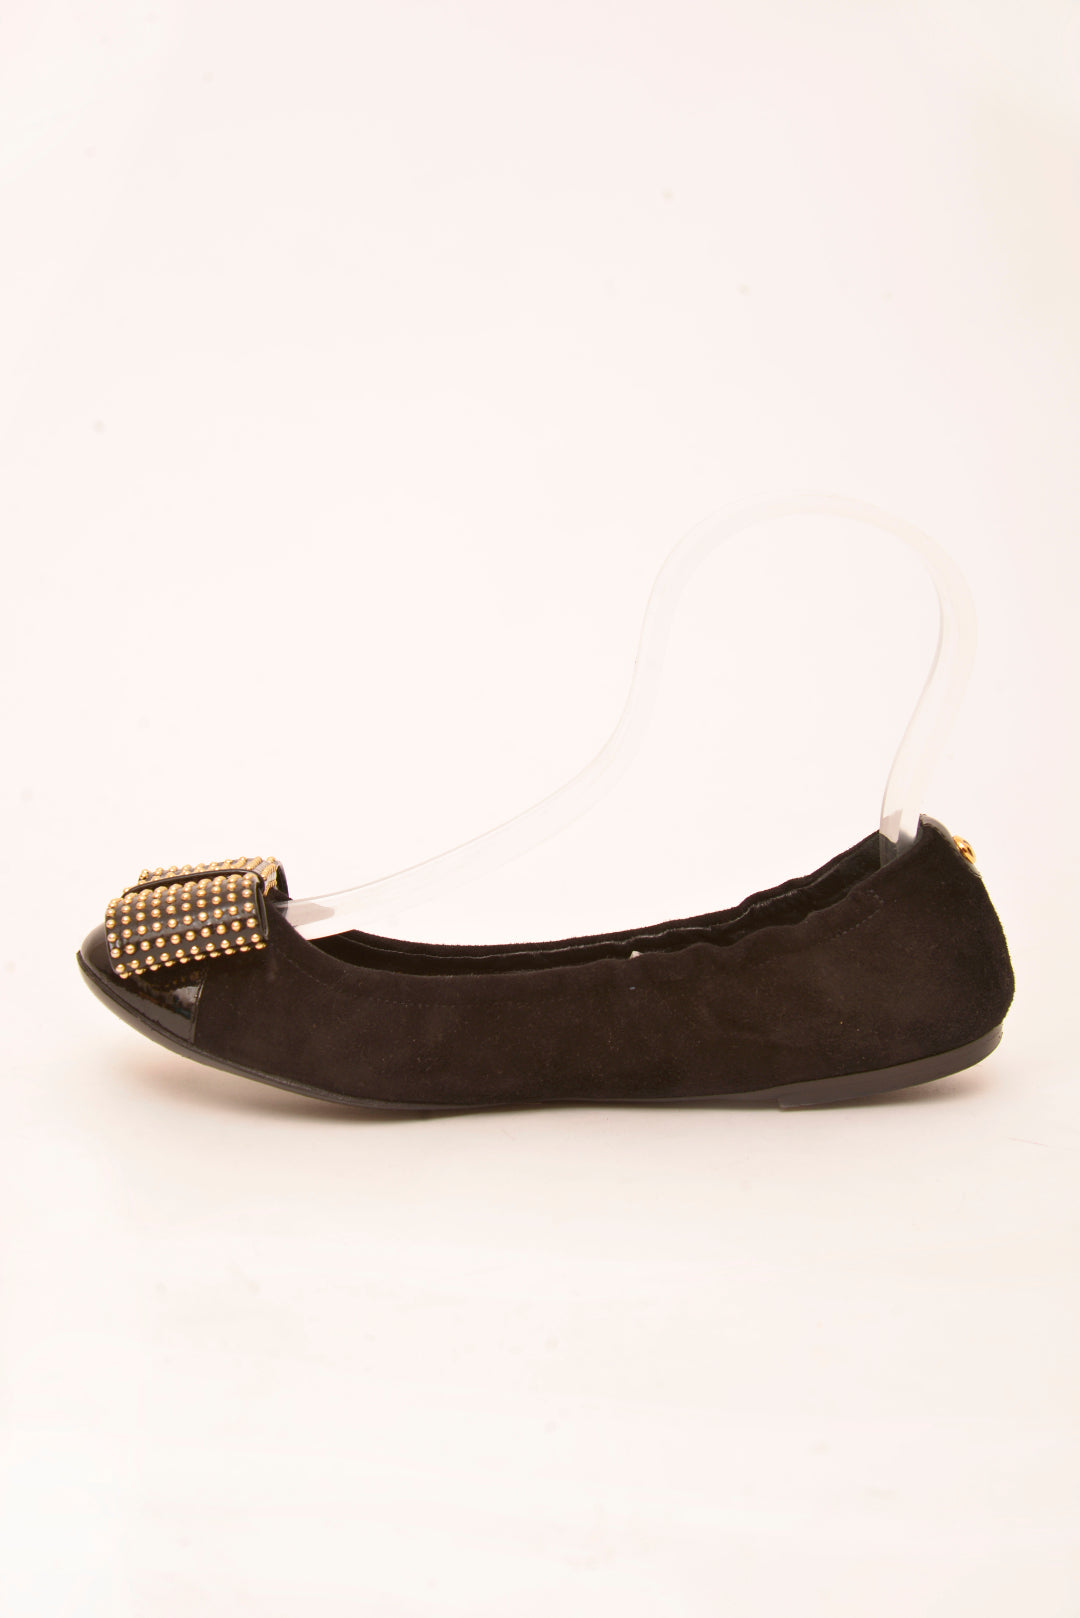 Louis Vuitton Suede Bow Ballet Flats in Black (38.5) - Mercado32